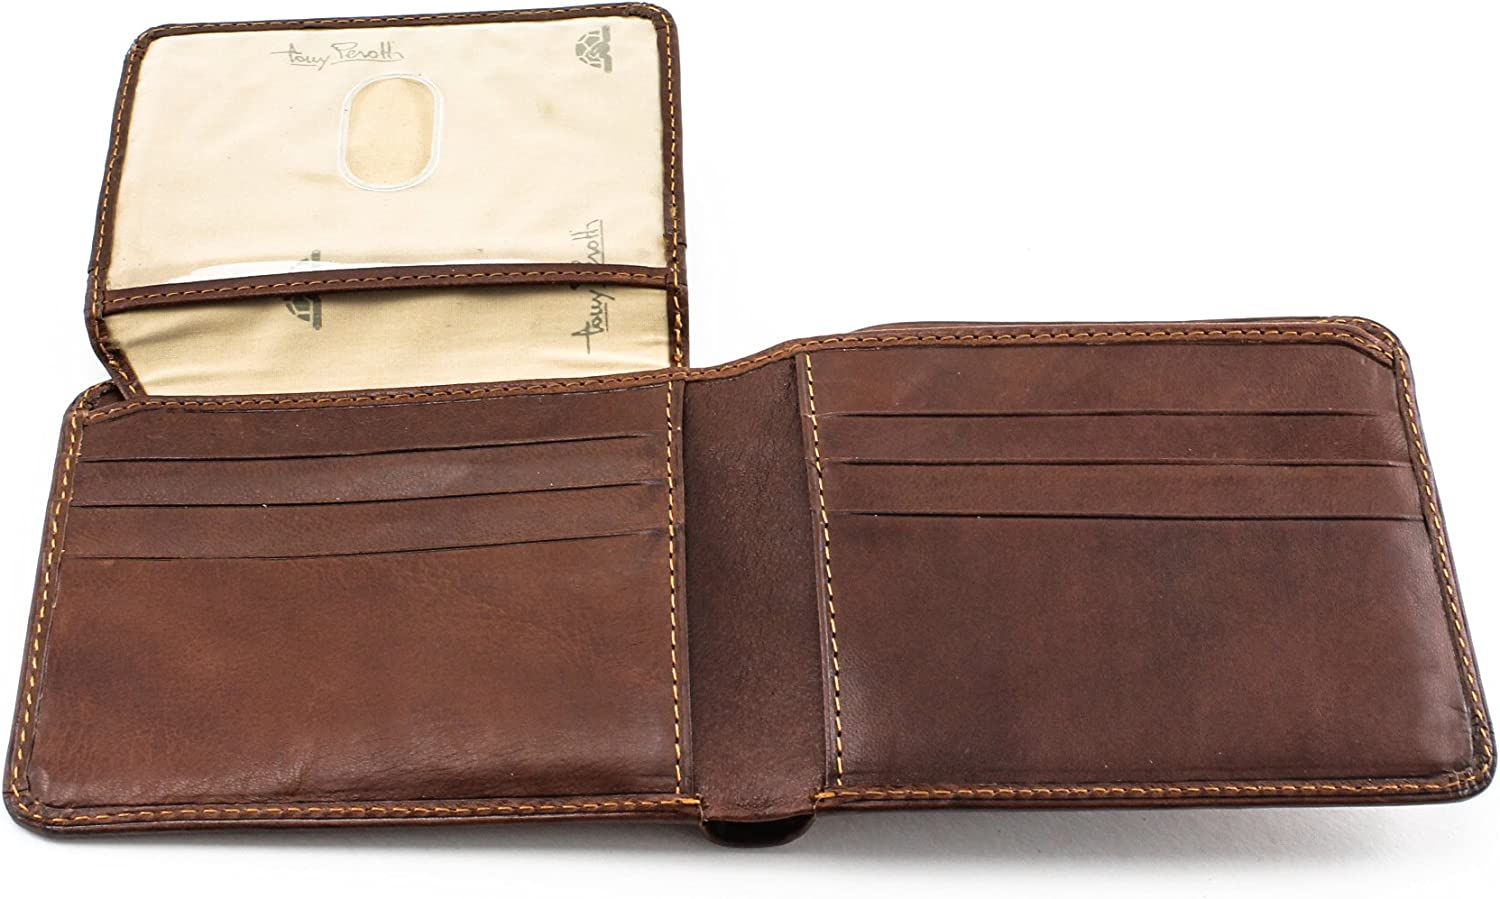 Tony Perotti Mens Italian Cow Leather Classic Bifold Wallet with ID Window Flap in Brown (Cognac, Non-Personalized)